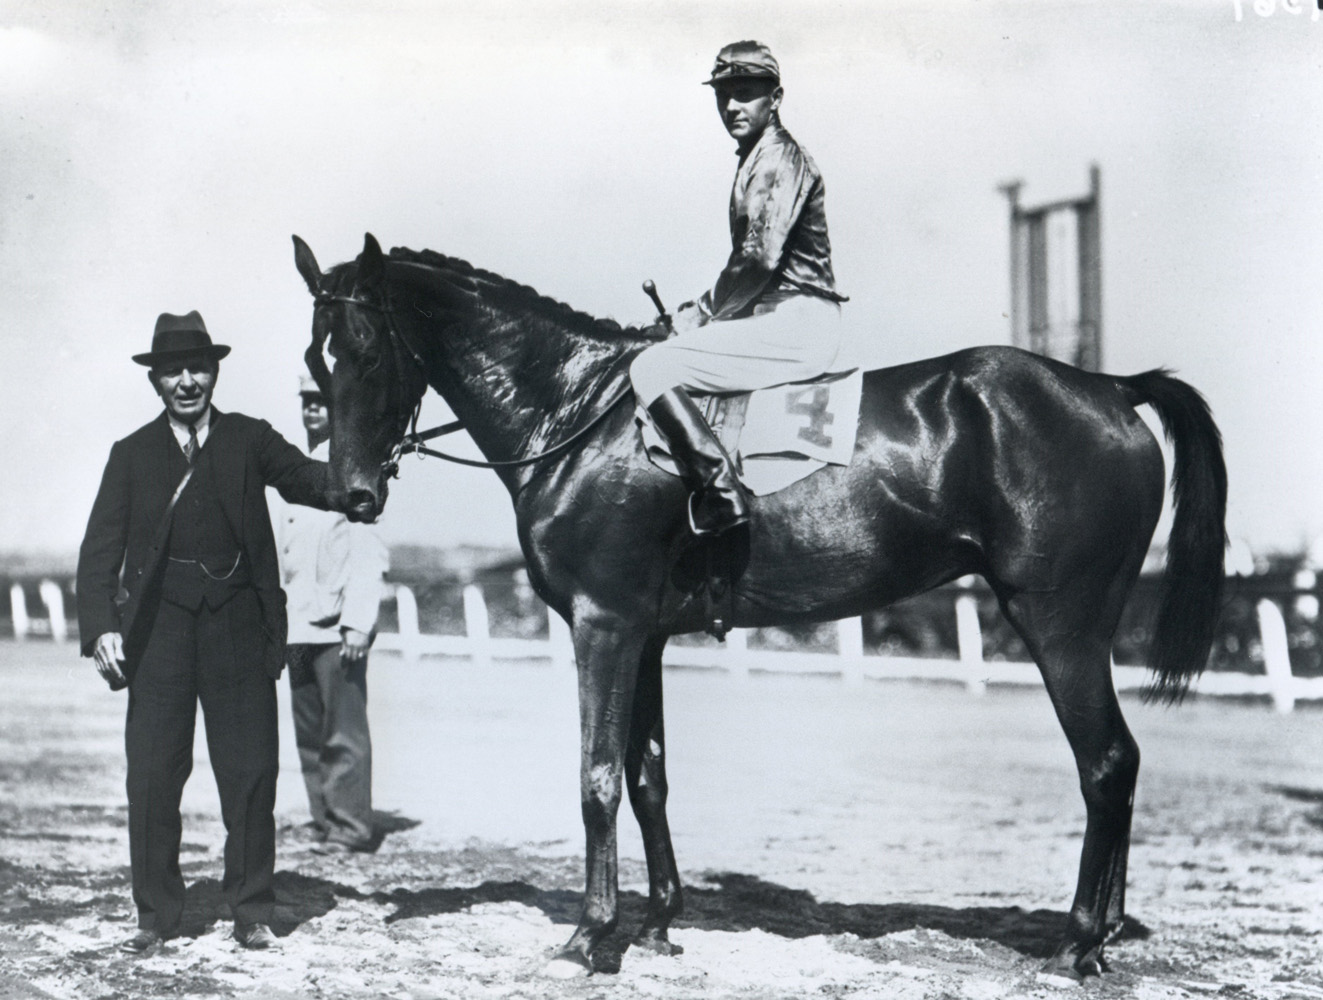 George Bostwick with trainer Thomas Hitchcock after winnning the 1930 Bushwick Steeplechase at Aqueduct with Actor (Keeneland Library Cook Collection/Museum Collection)